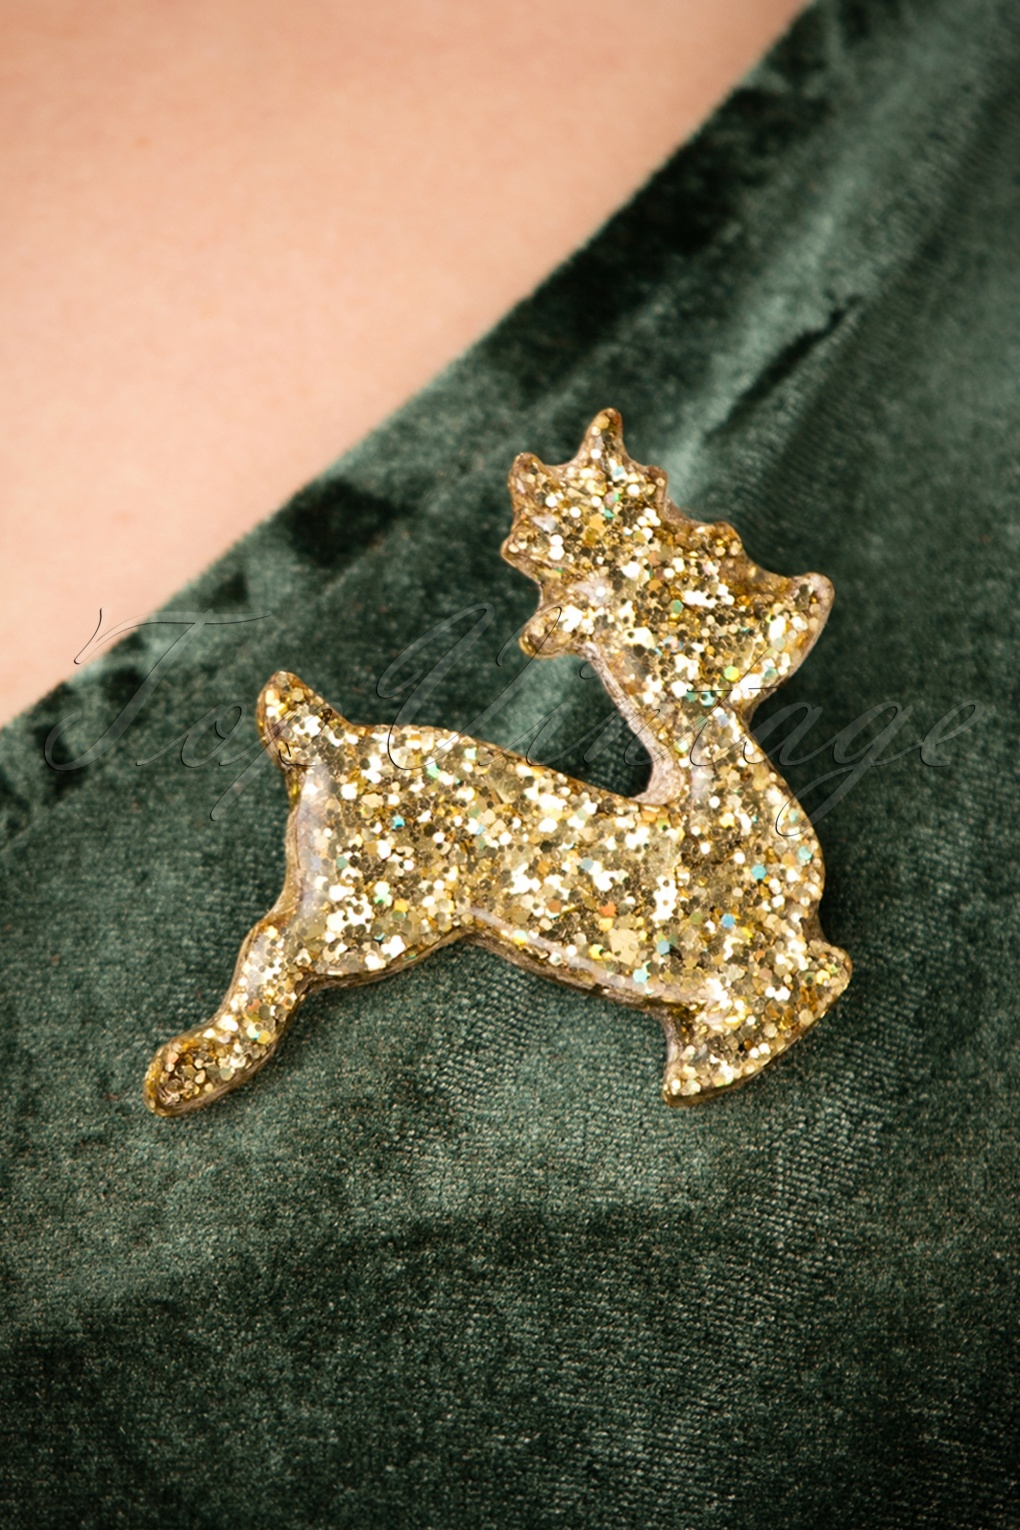 Vintage Style Jewelry, Retro Jewelry 50s Sparkly Reindeer Brooch in Gold £14.22 AT vintagedancer.com